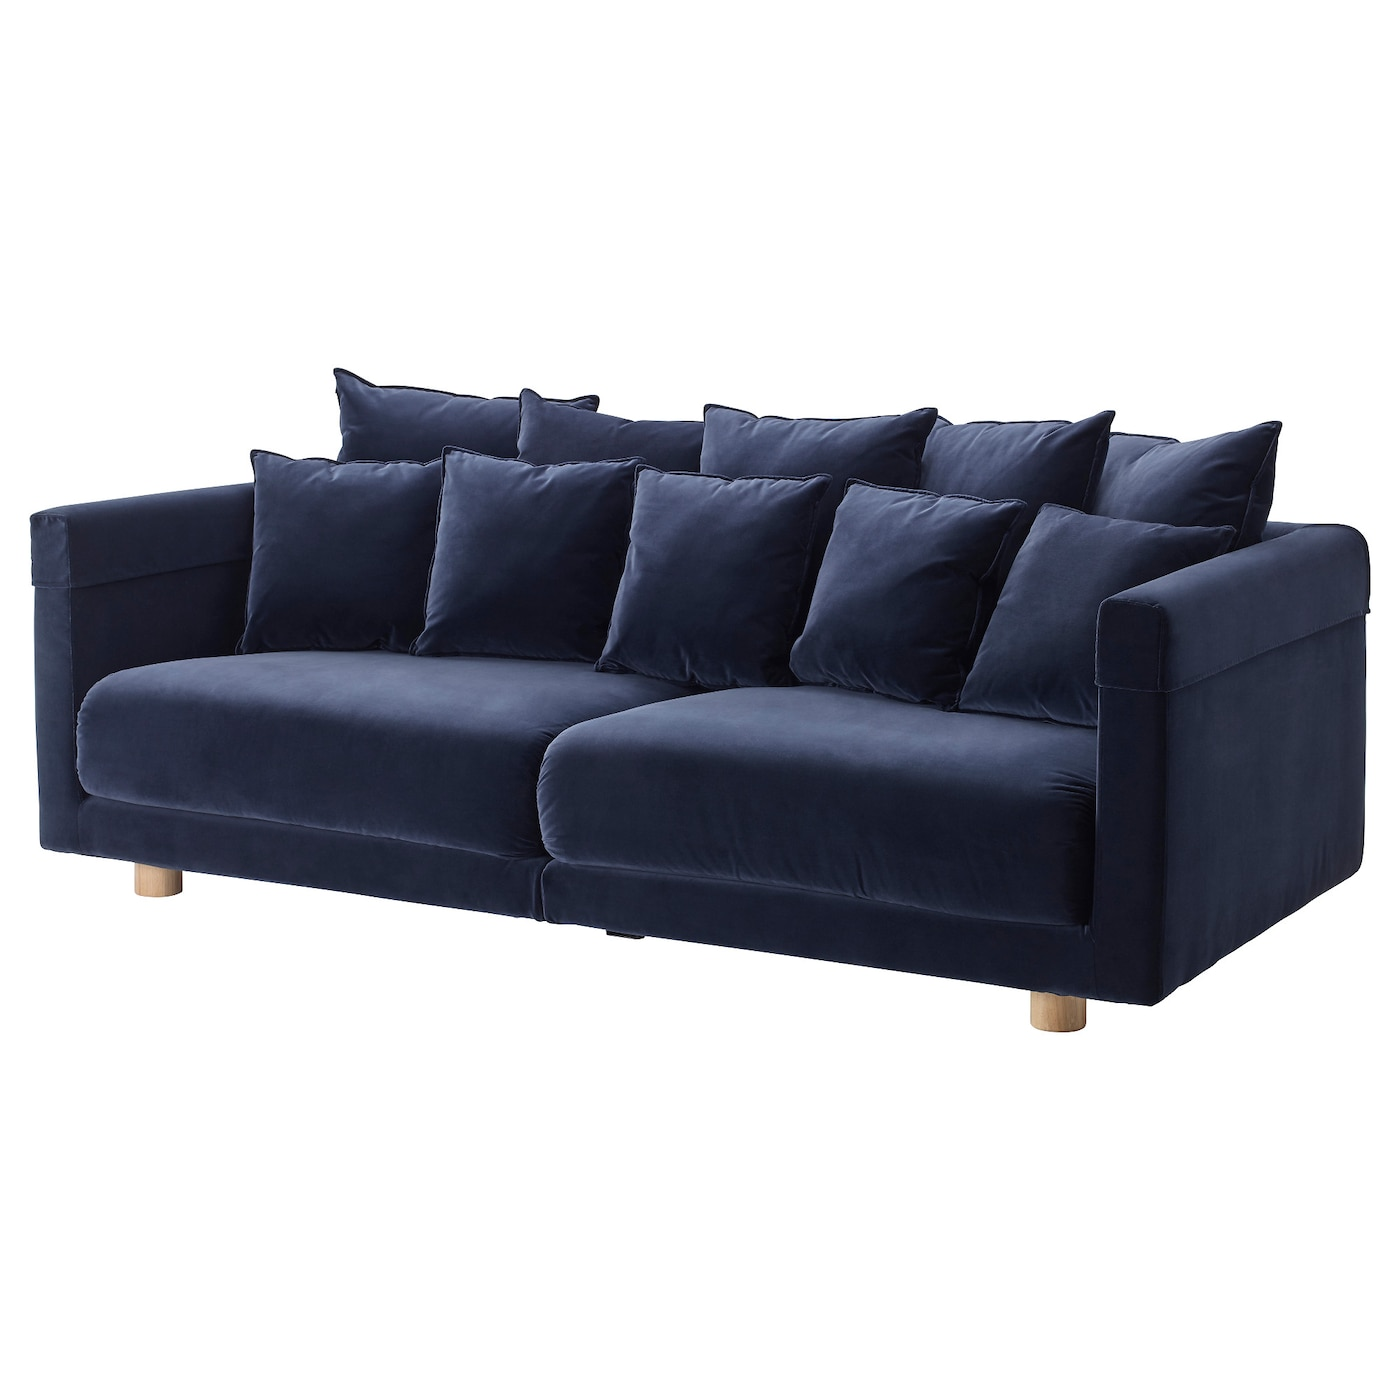 Stockholm 2017 three seat sofa sandbacka dark blue ikea for Stockholm sofa ikea